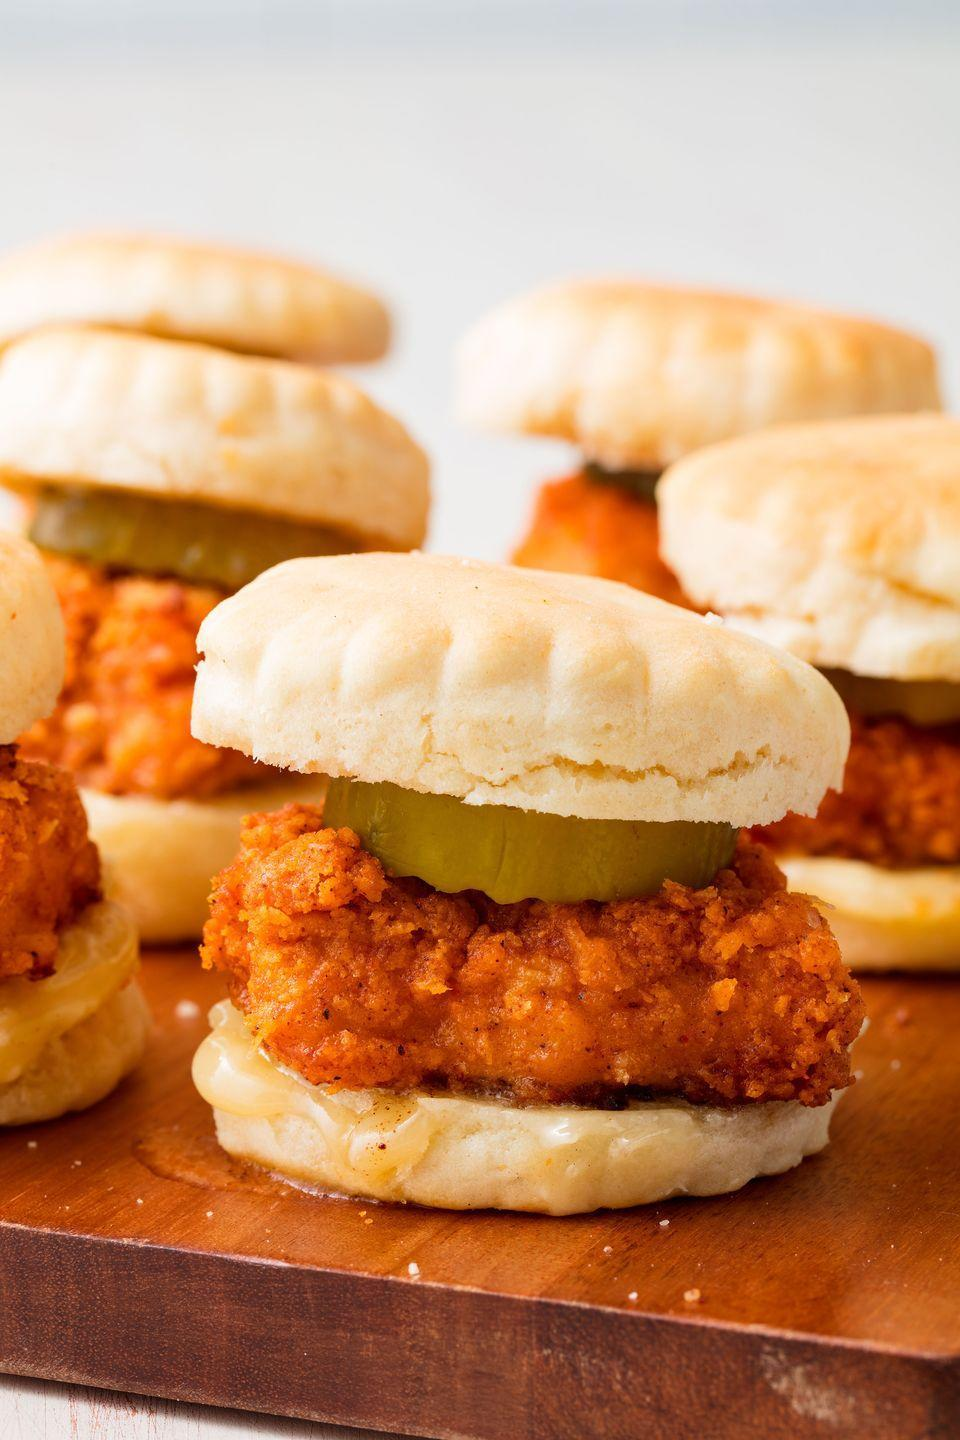 """<p>Move over, chicken and waffles.</p><p>Get the recipe from <a href=""""https://www.delish.com/cooking/recipe-ideas/recipes/a50371/chicken-n-biscuit-sliders-recipe/"""" rel=""""nofollow noopener"""" target=""""_blank"""" data-ylk=""""slk:Delish"""" class=""""link rapid-noclick-resp"""">Delish</a>.</p>"""